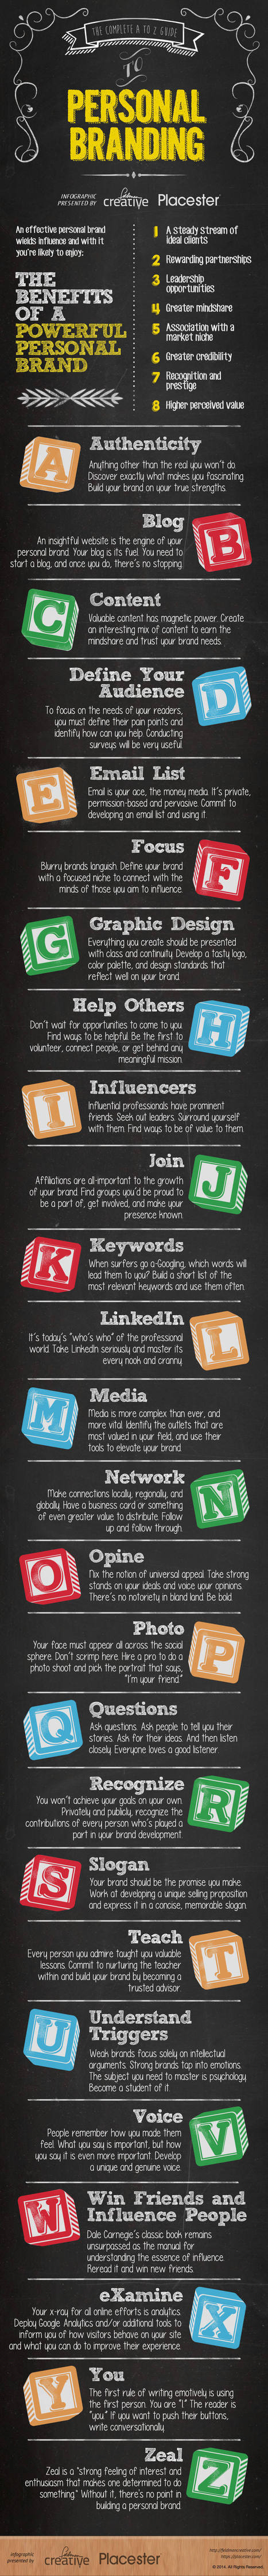 Personal Branding: The Complete A to Z Guide to Doing It Right [Infographic] | Mance Creative - Graphic and Website Design | Scoop.it